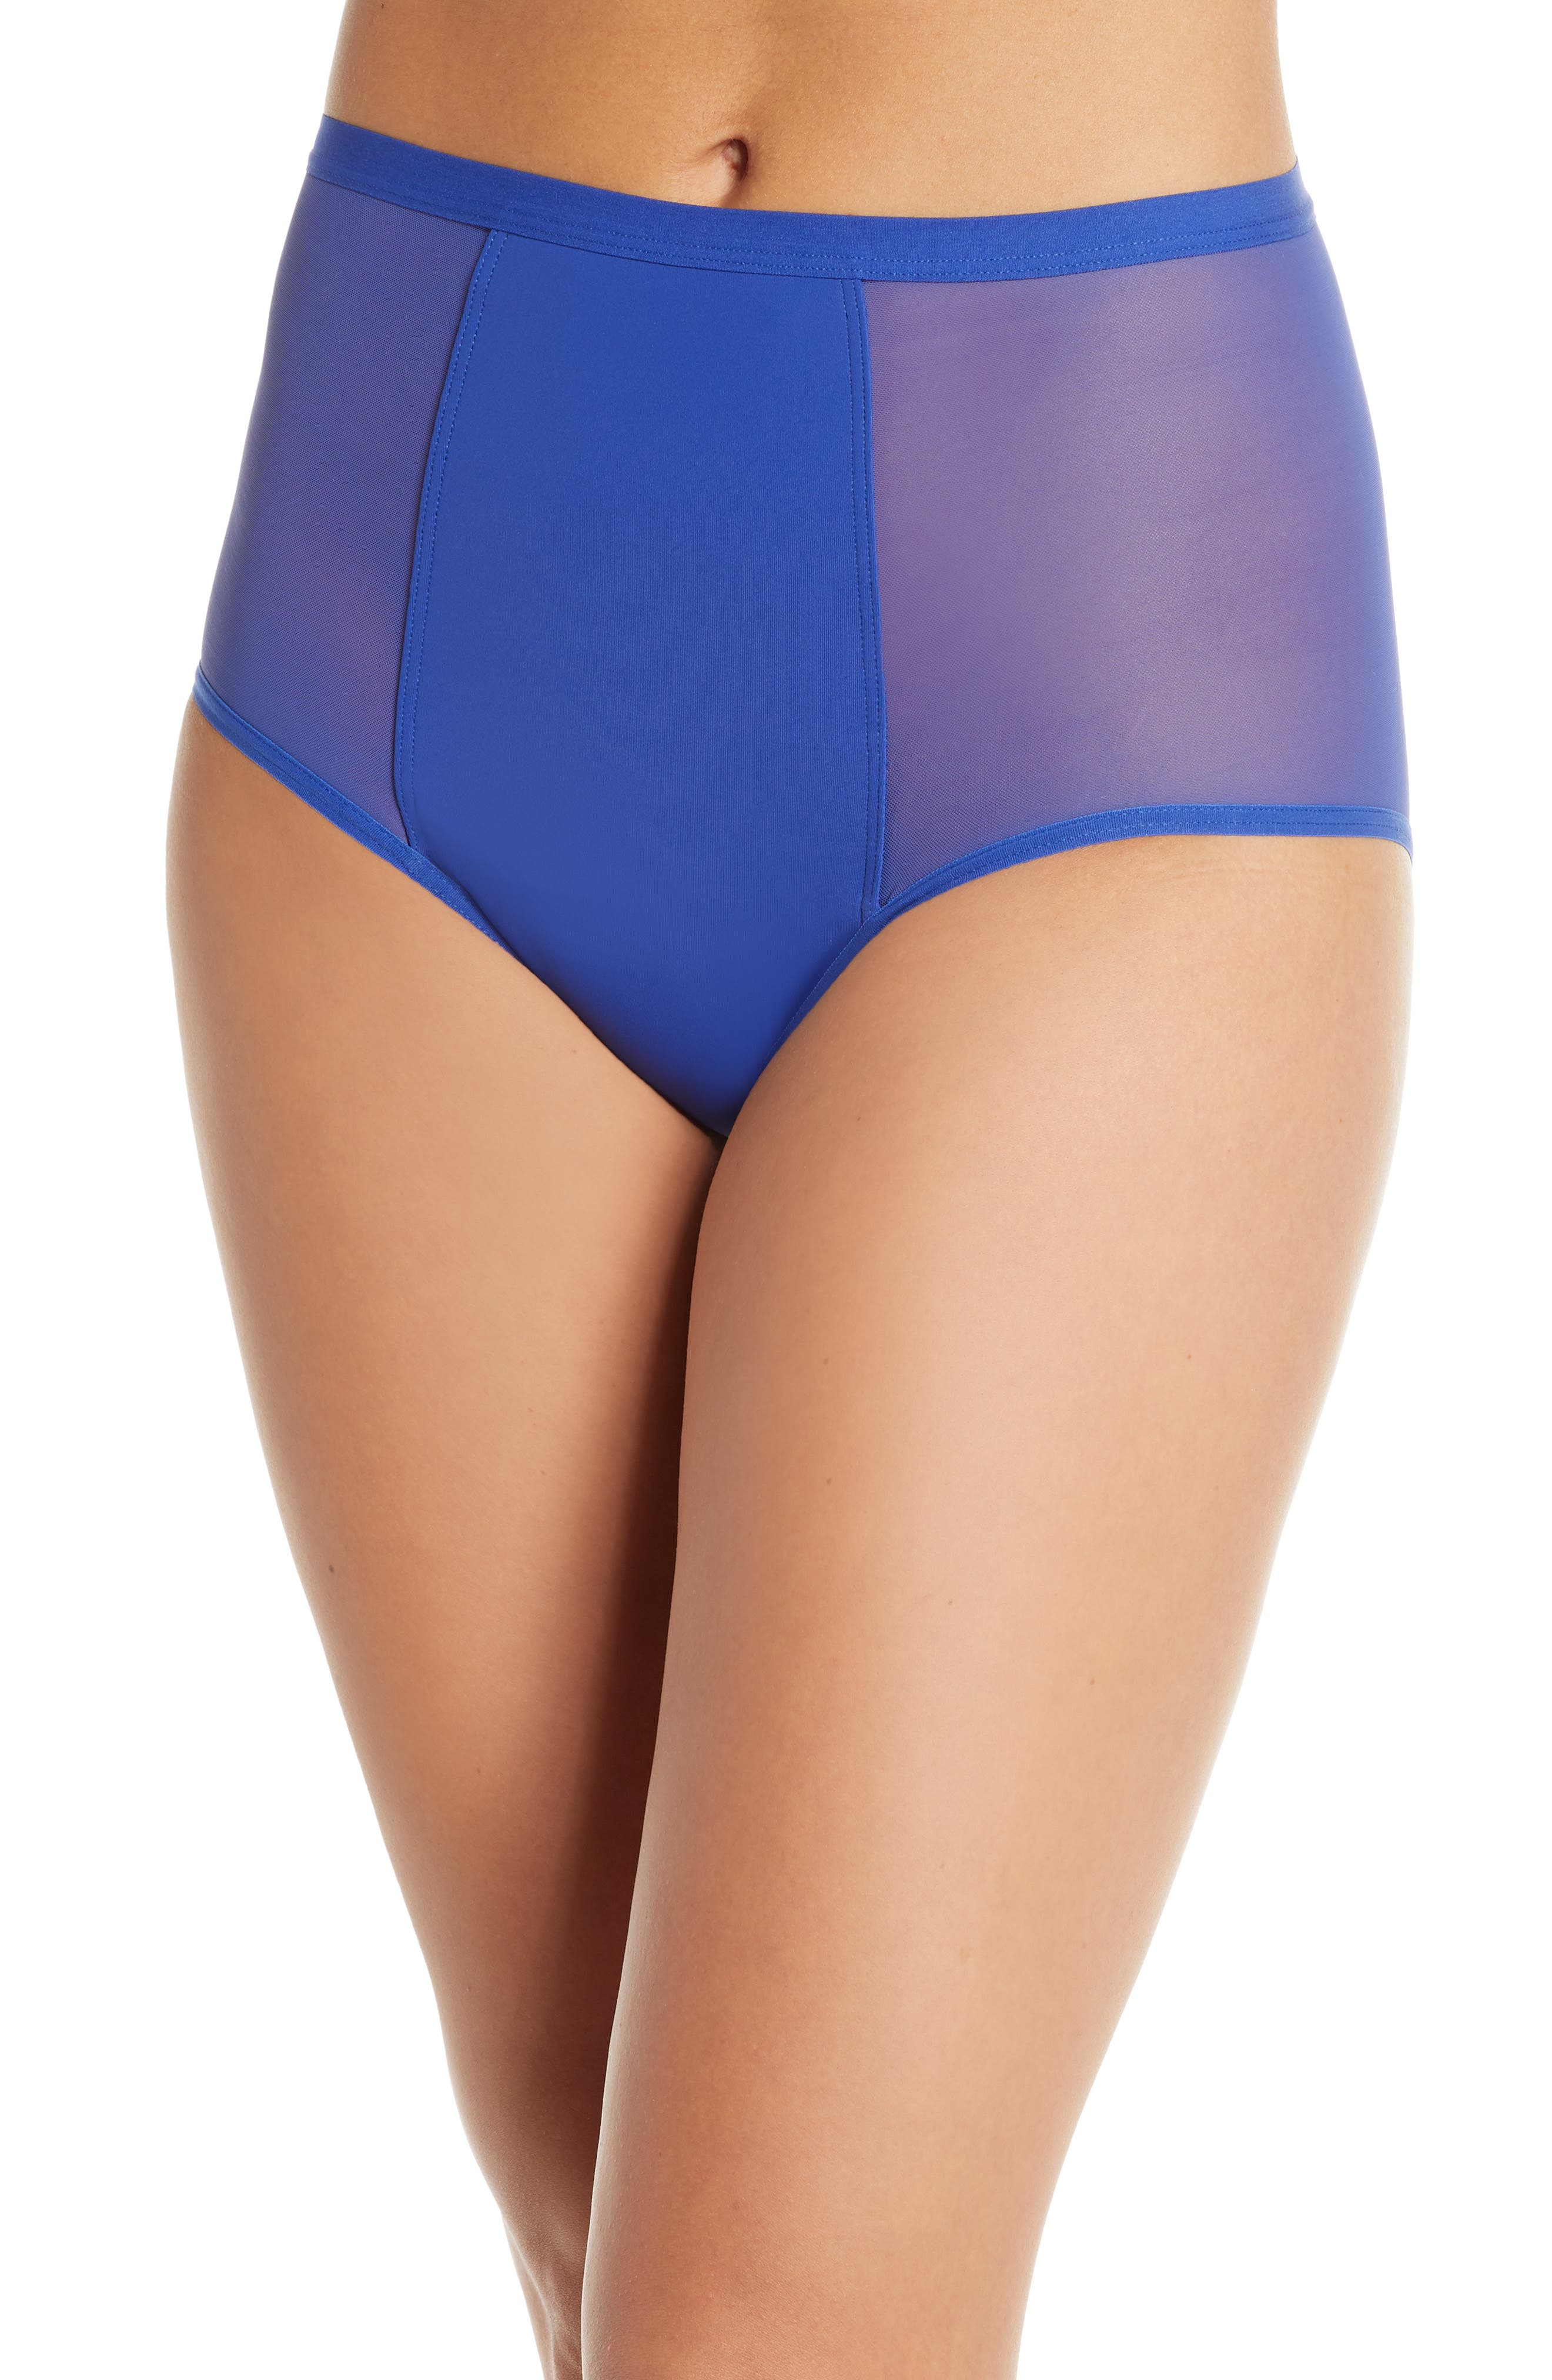 THINX Period Proof High Waist Panties